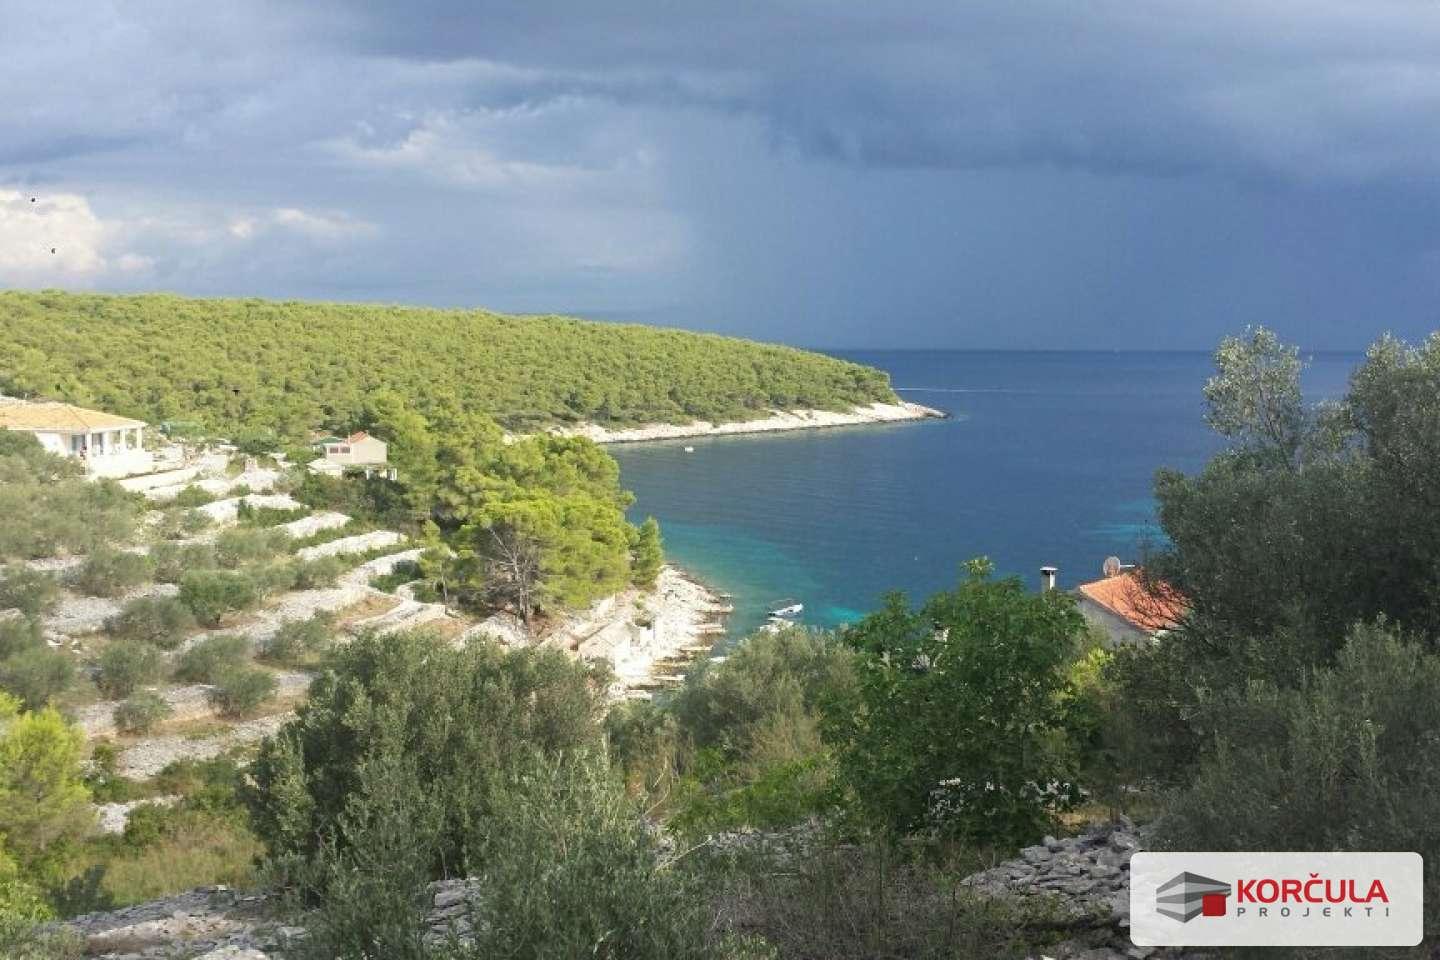 Building land in a beautiful bay on the west side of the island of Korcula